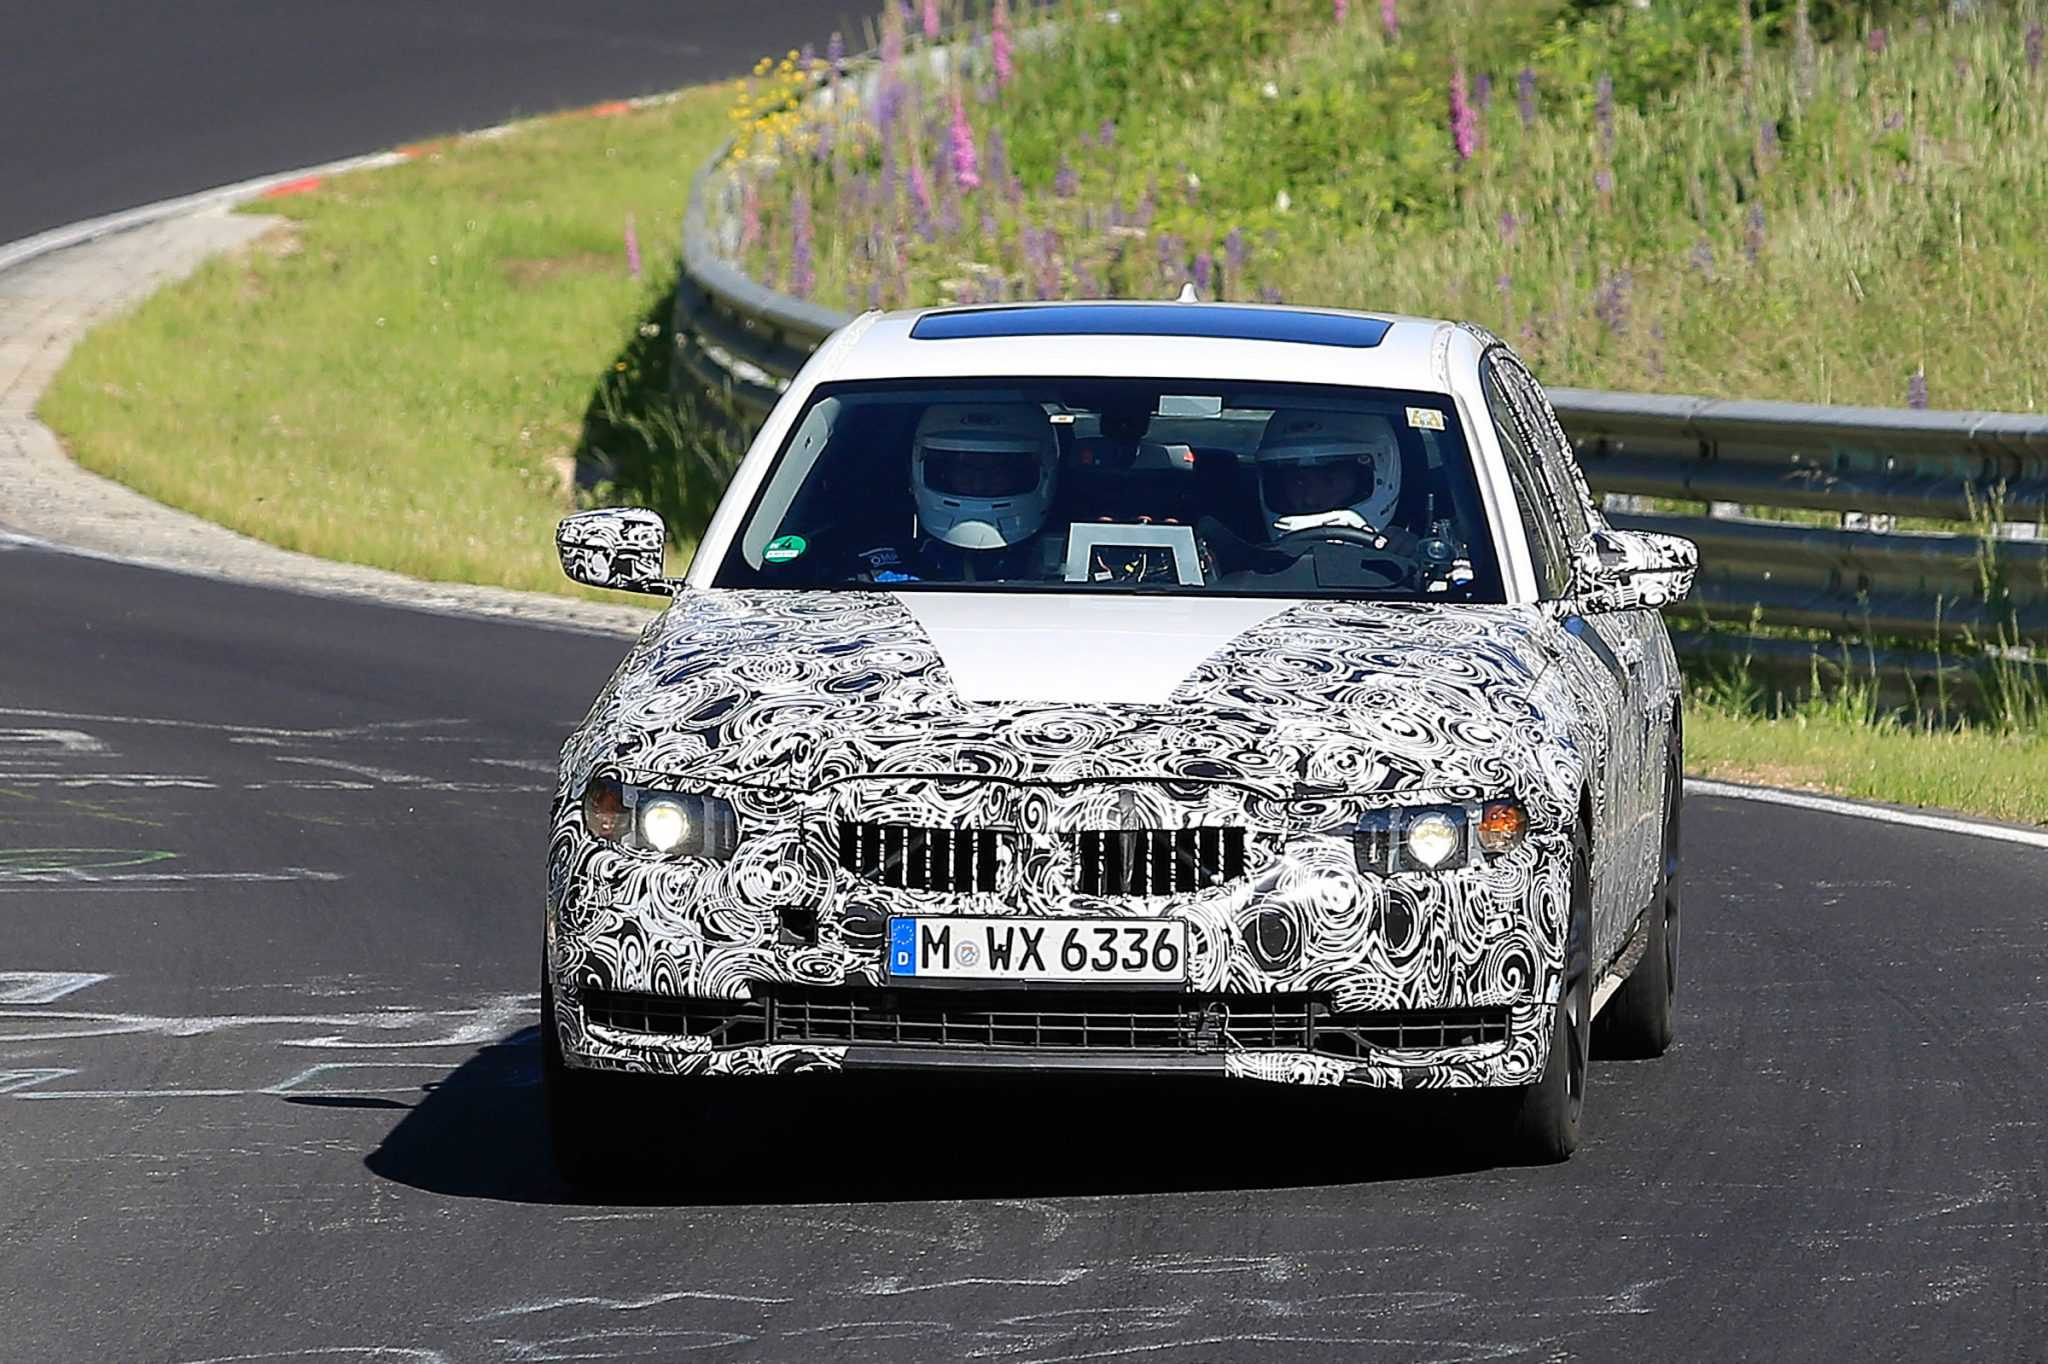 2018 BMW 3 Series Spy Shots Emerge Online